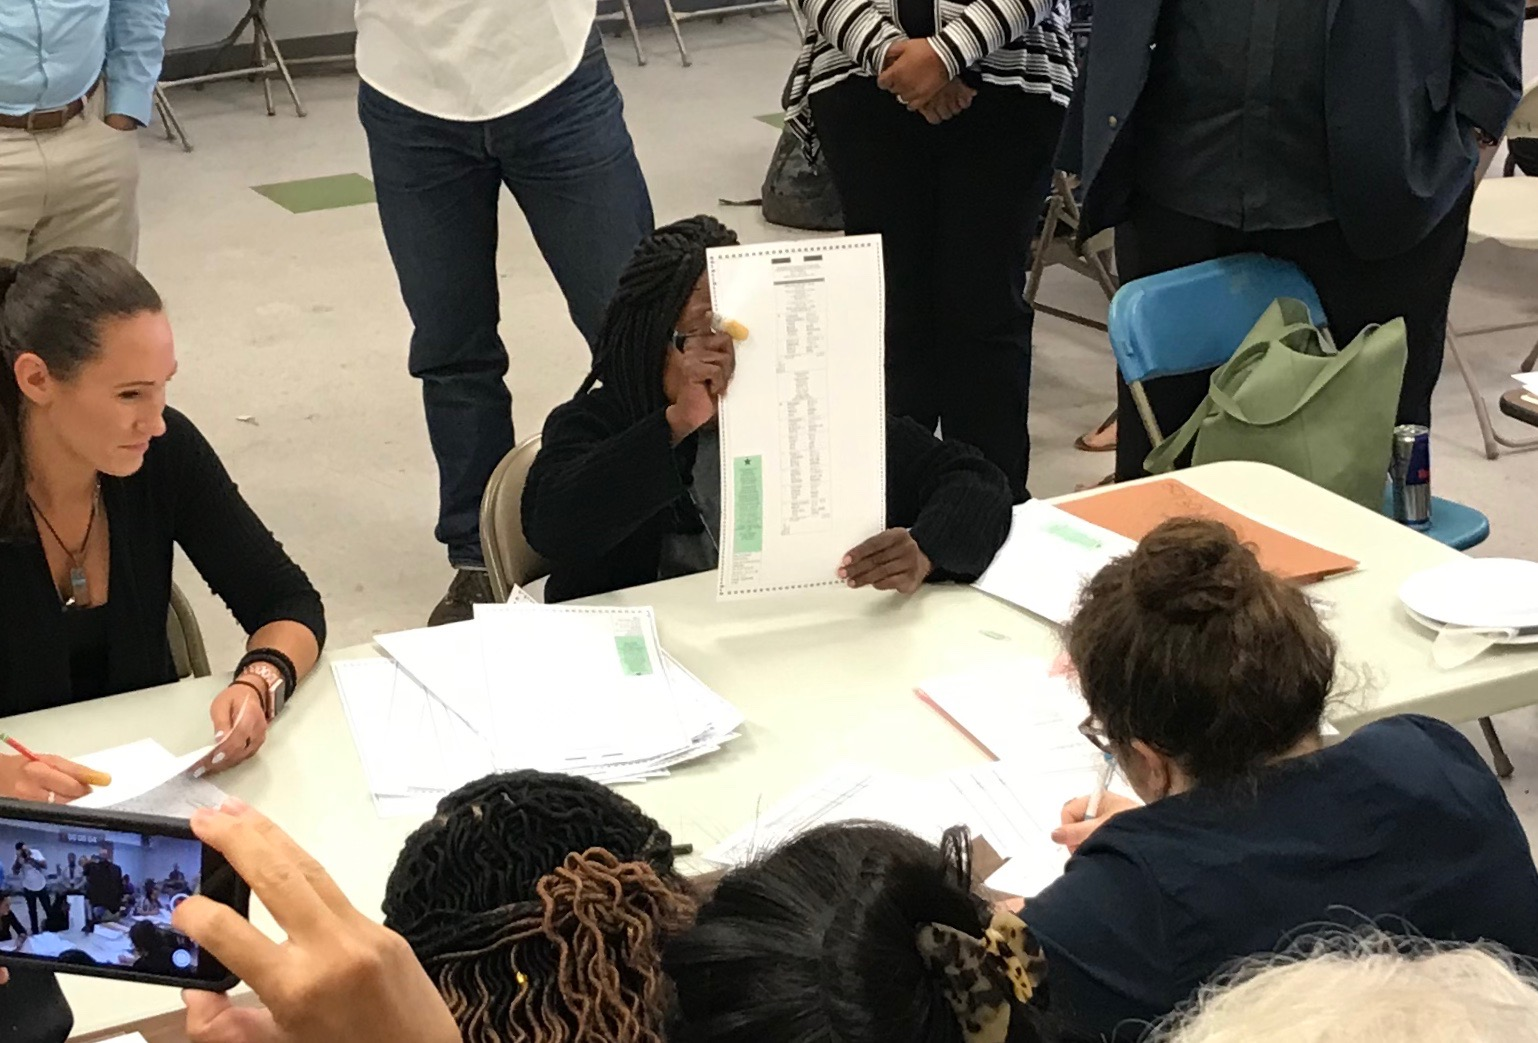 A BOE official holds up the very last ballot during the recount in the Democratic primary for Queens DA.  Eagle  photo by David Brand